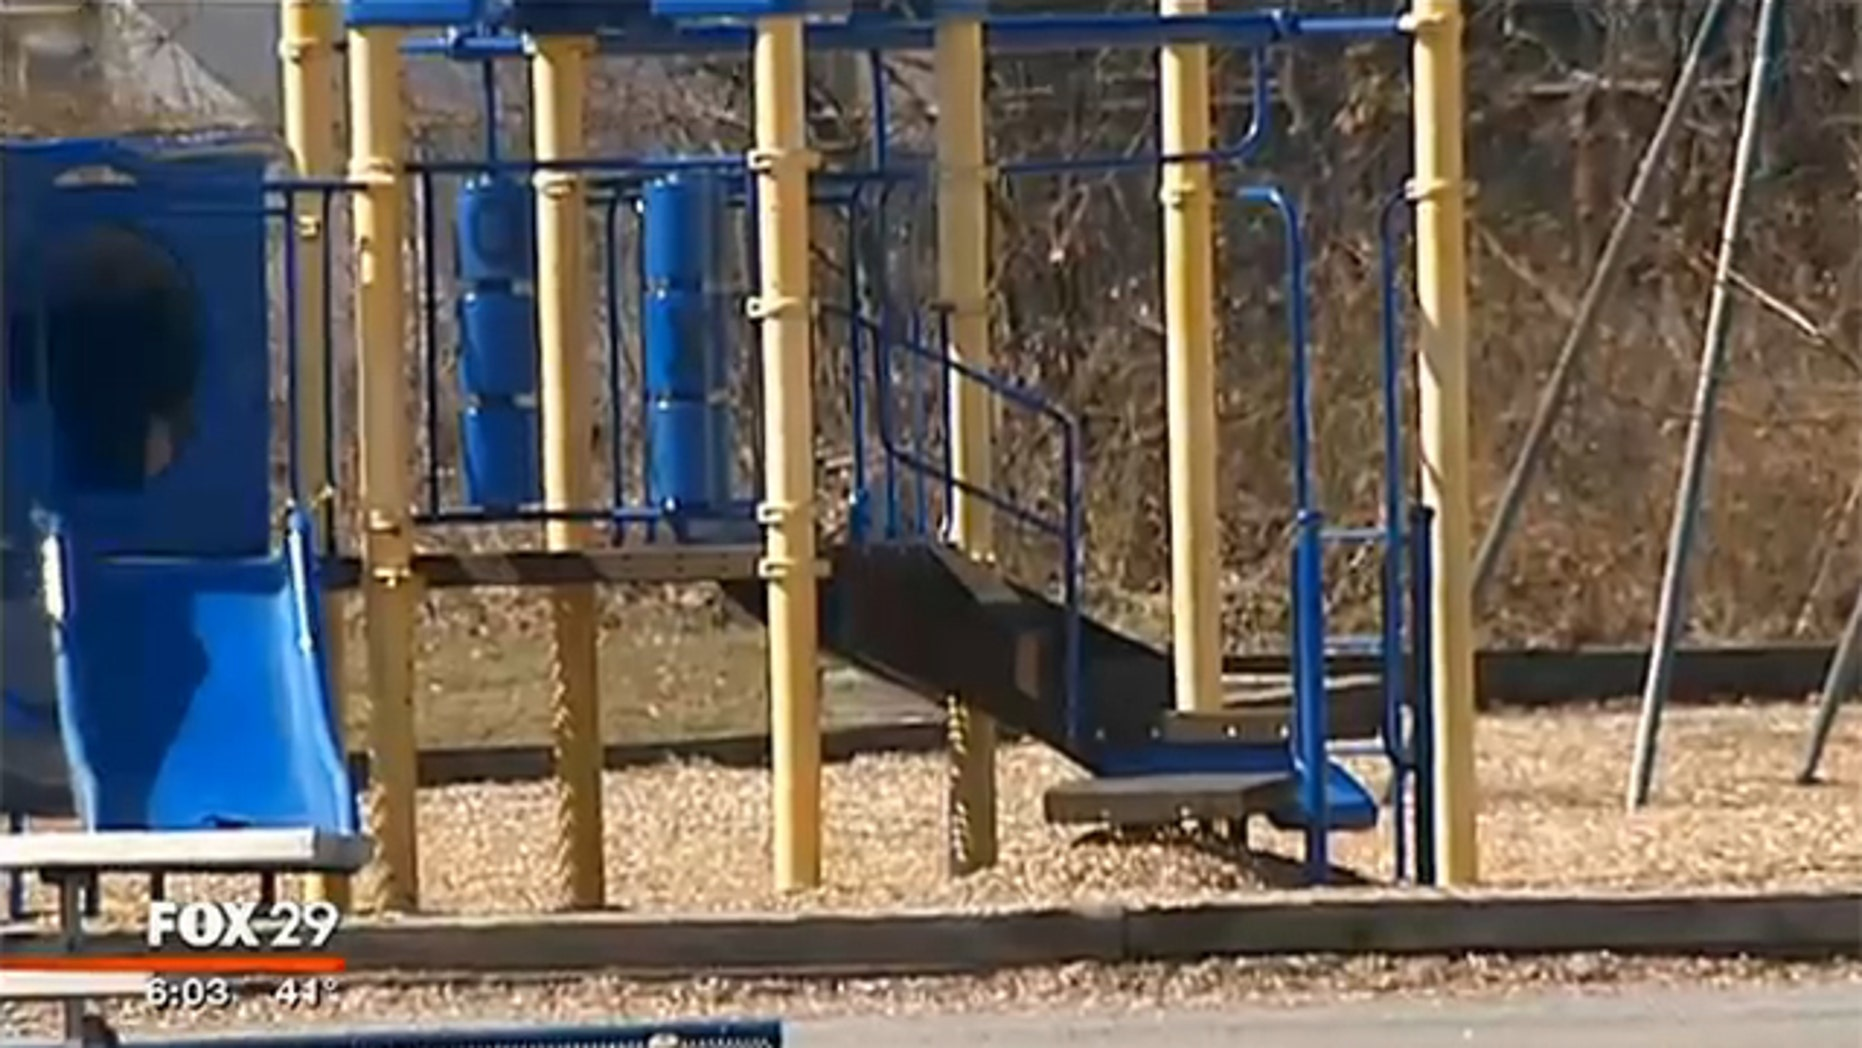 Mar. 4, 2013: Bailey O'Neill died after sustaining injuries in a playground fight.